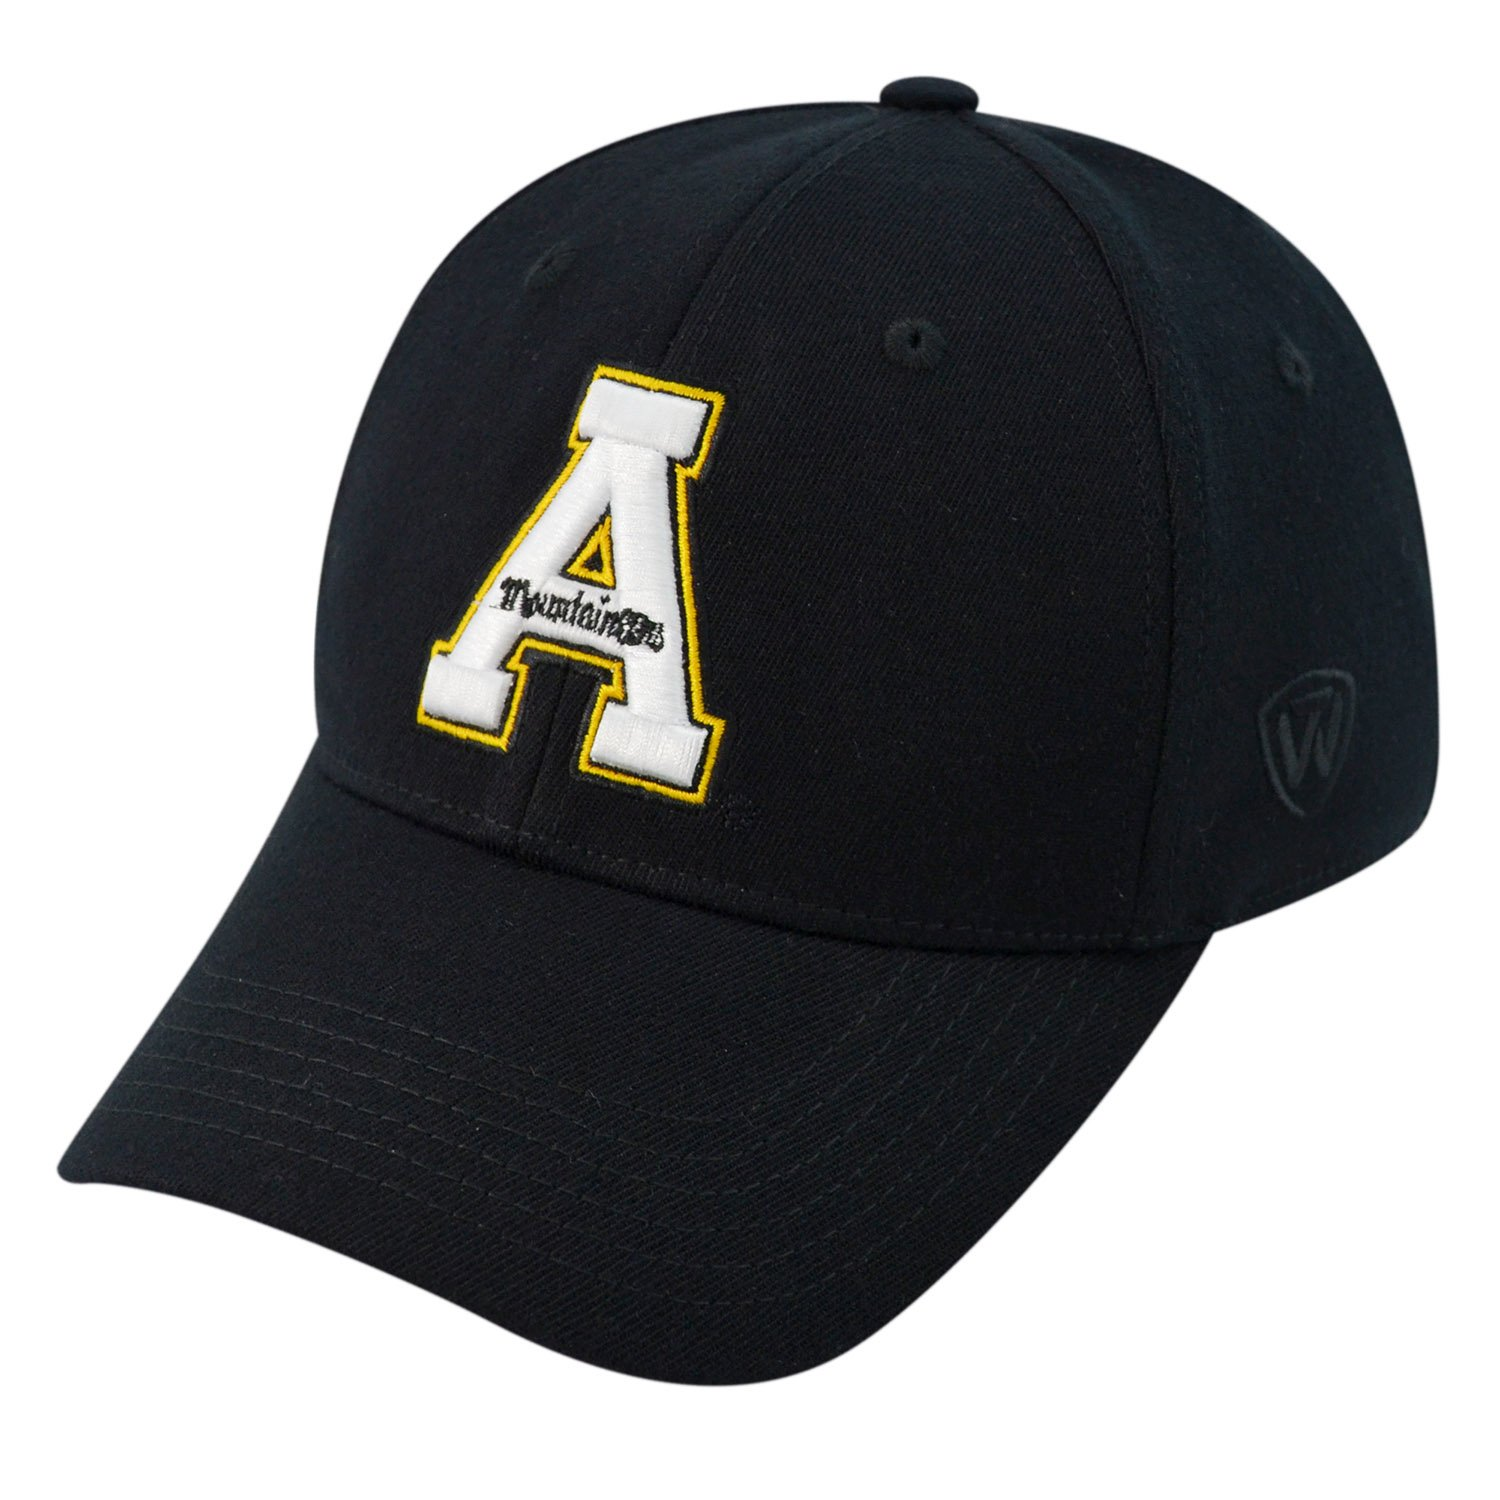 Top of the World Appalachian State Mountaineers公式NCAA OneフィットLarge Oneフィットウール帽子キャップby 332284   B07C2LWJXX